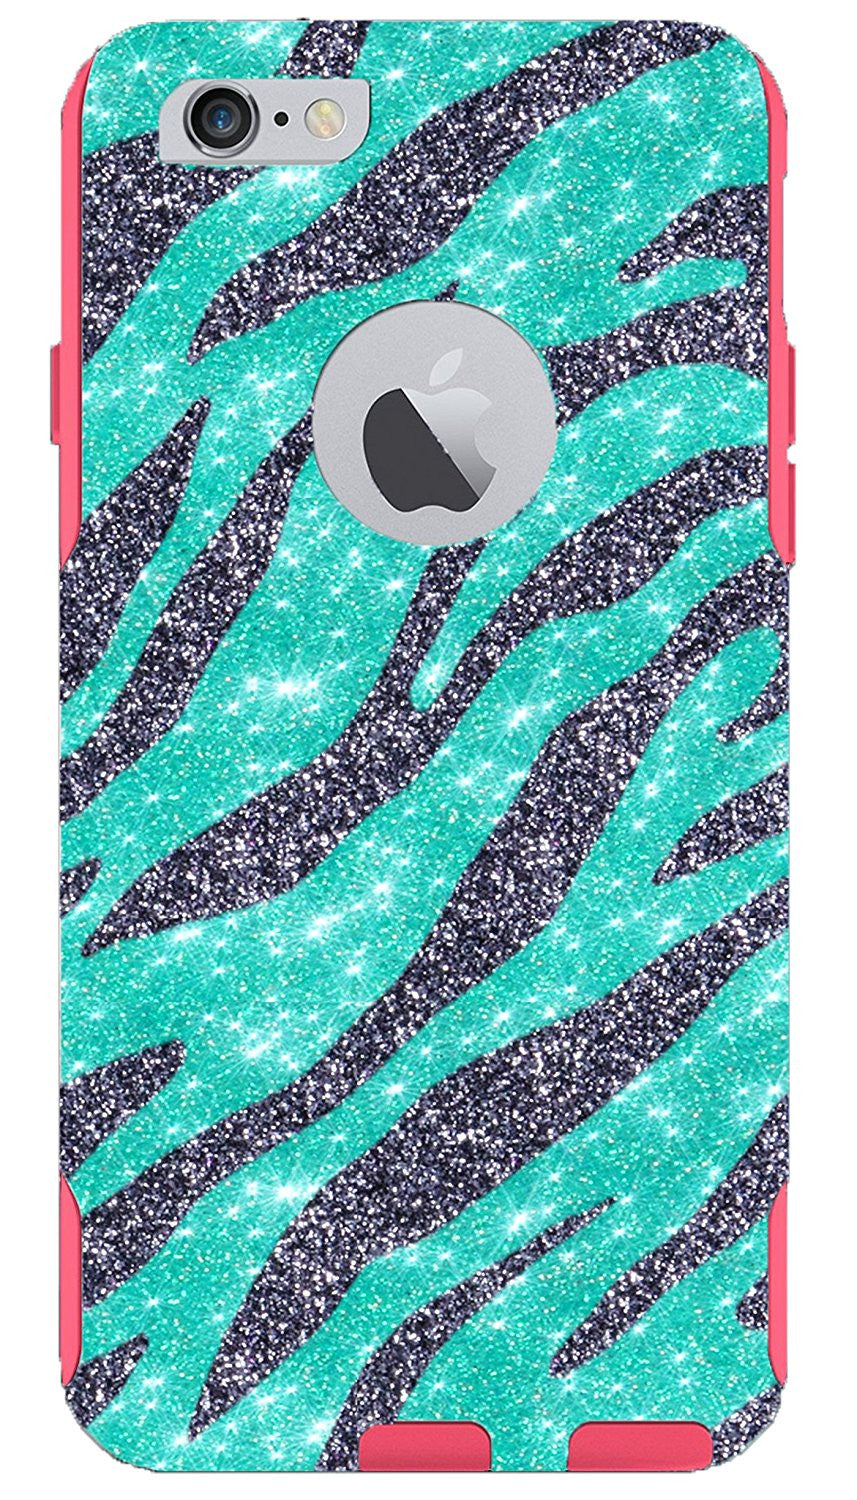 official photos 29d78 e772d 1WinR OtterBox Commuter Series Glitter Case for iPhone 6 Plus Retail  Packaging - Diagonal Zebra Smoke Print Wintermint/Pink